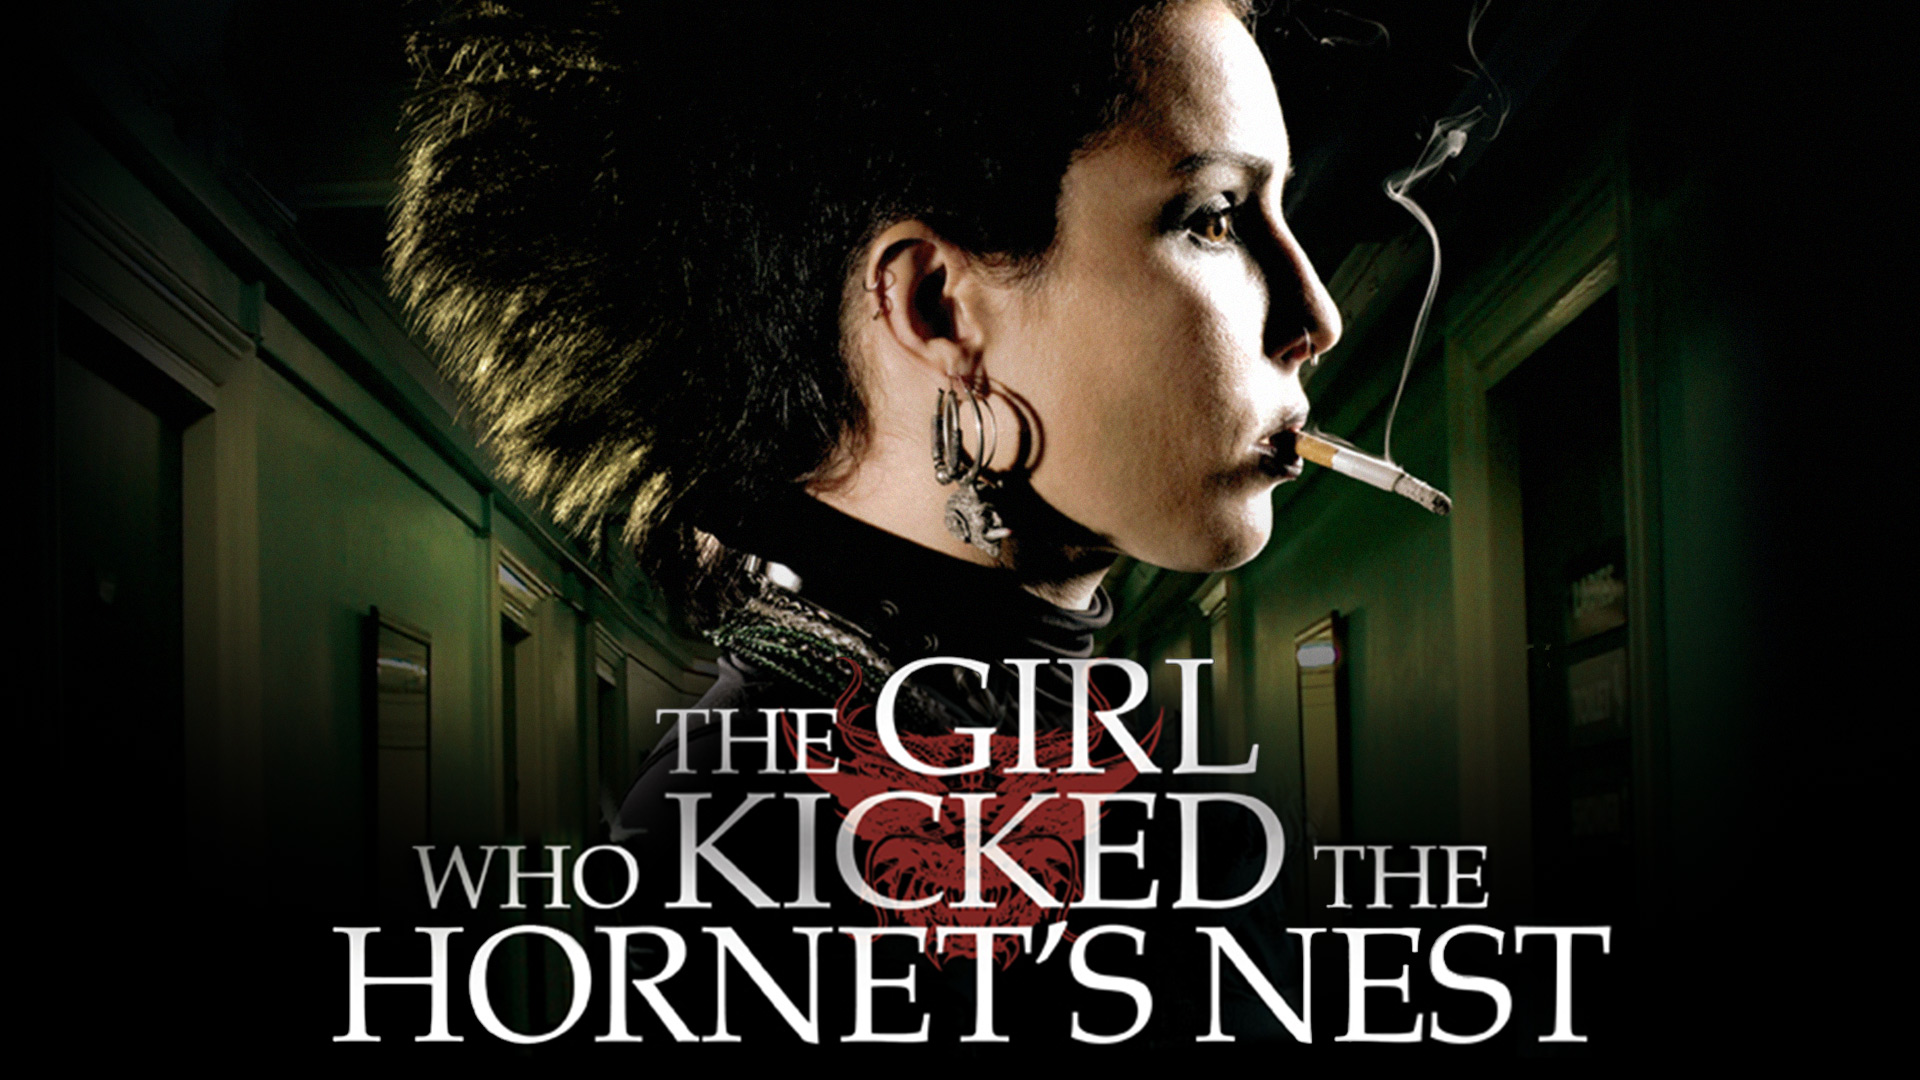 _DUPE_The Girl Who Kicked the Hornet's Nest